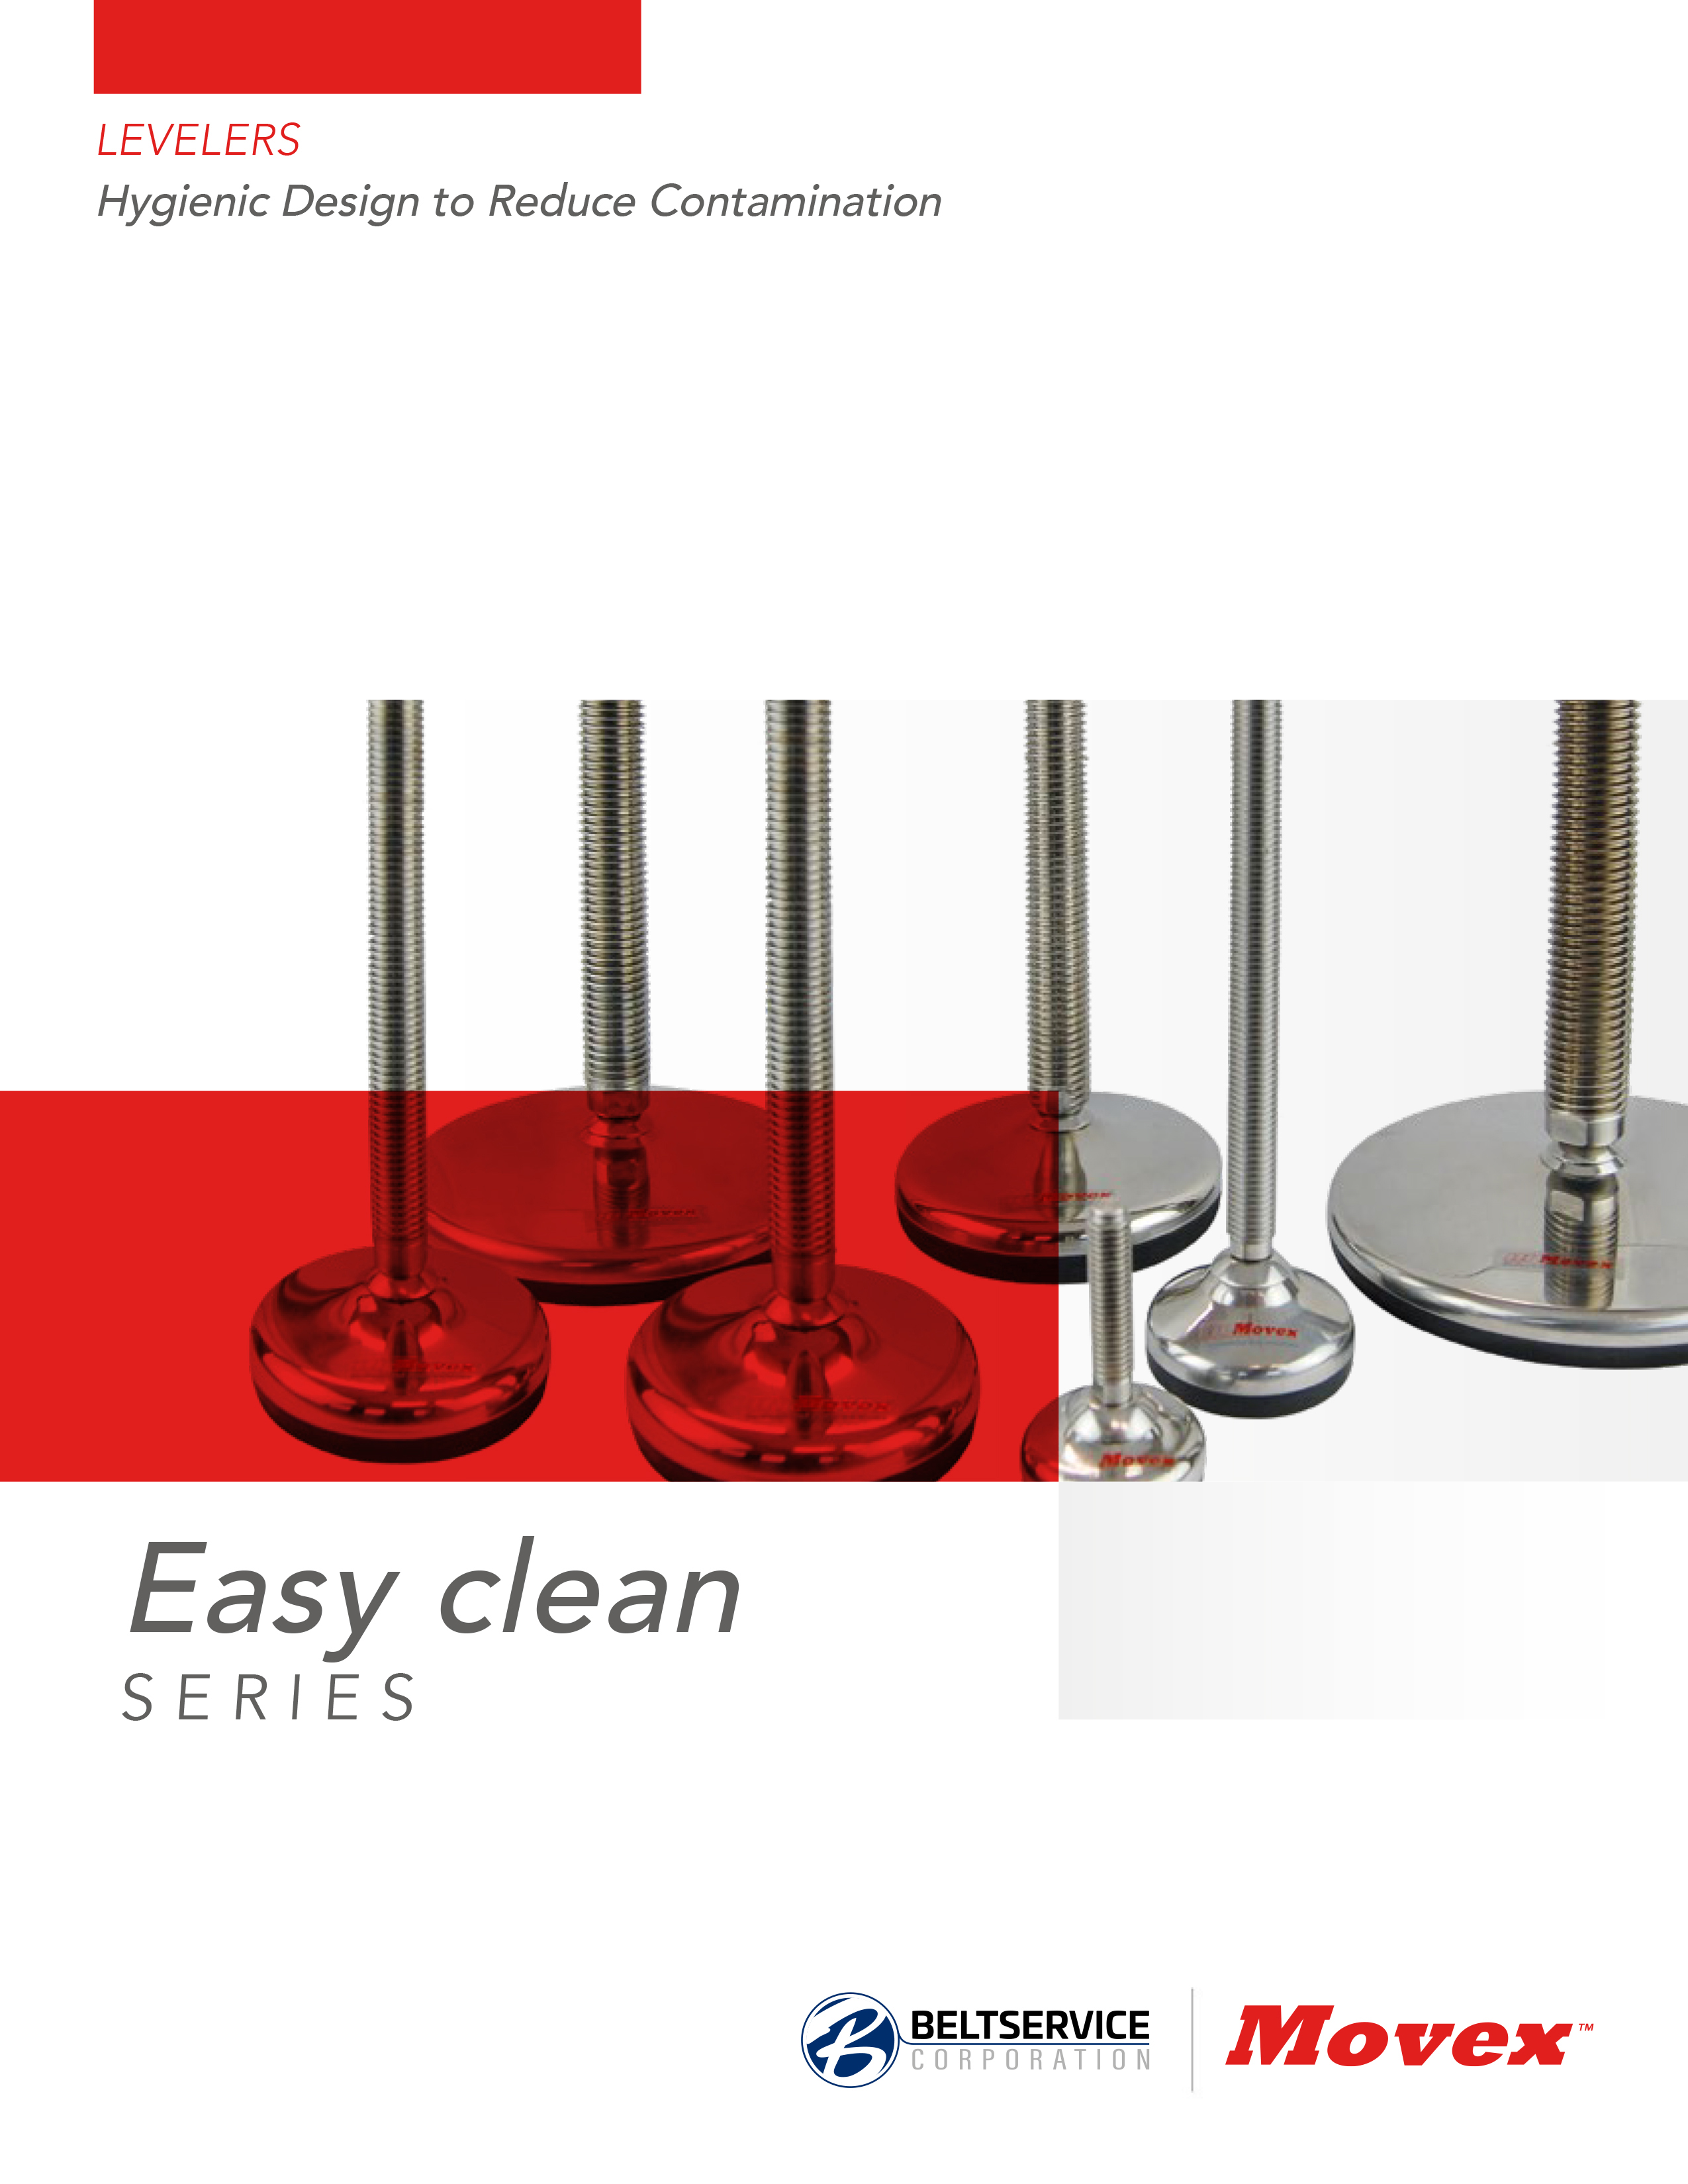 Movex Easy Clean Levelers